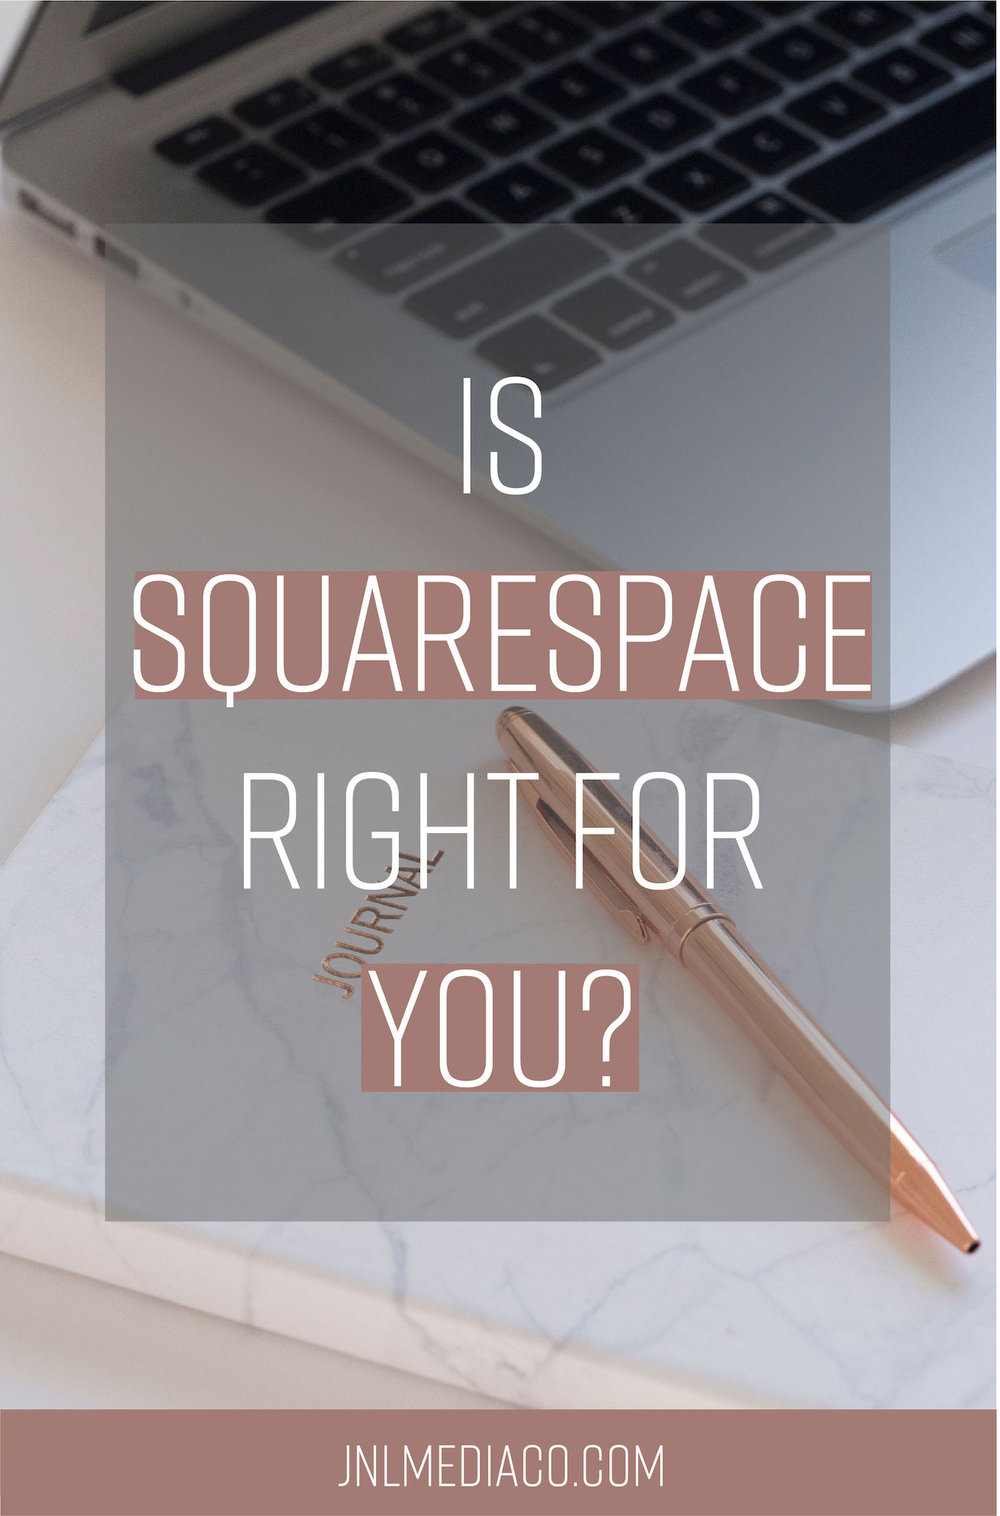 Is Squarespace Right For You? Find out by reading the full post over at jnlmediaco.com